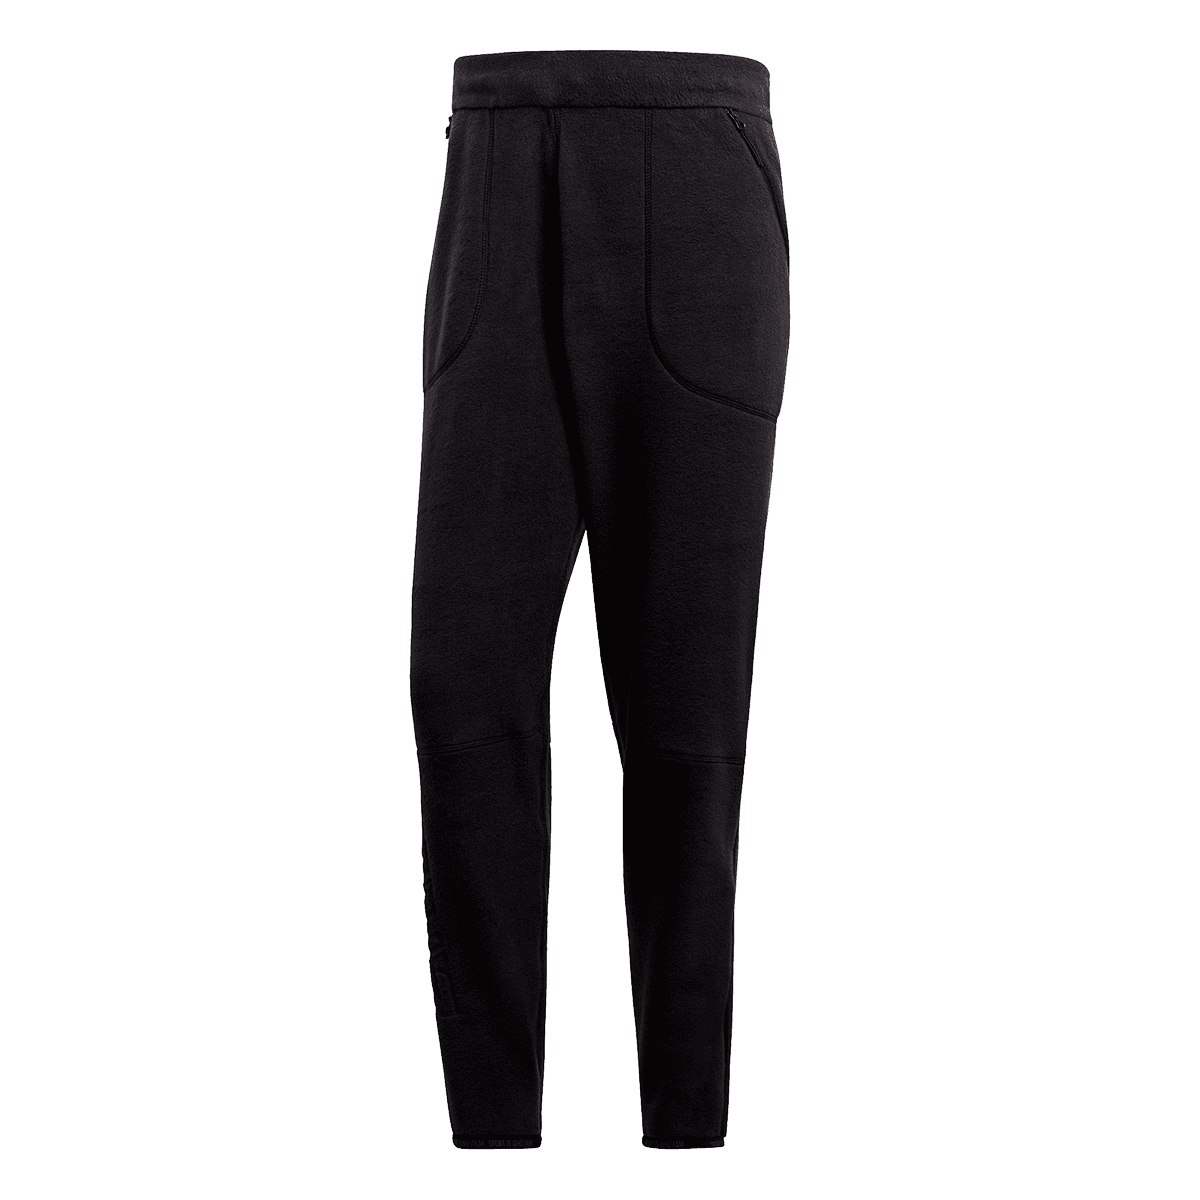 Adidas Z.N.E. Striker Hose Trainingshosen Hosen